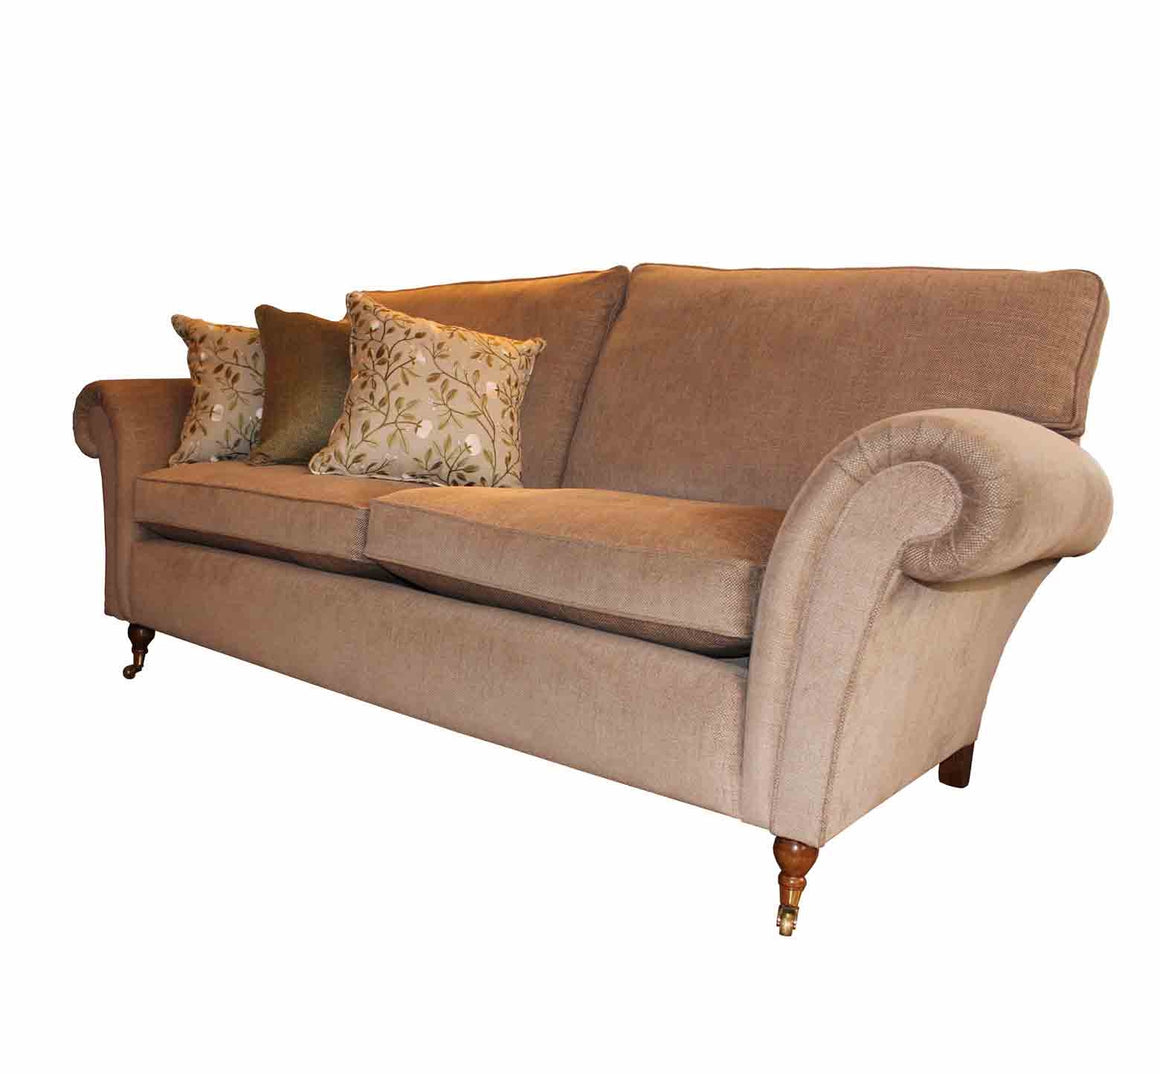 Henley Sofas and chairs in Linwood Iona BUY ONE, GET ONE FREE